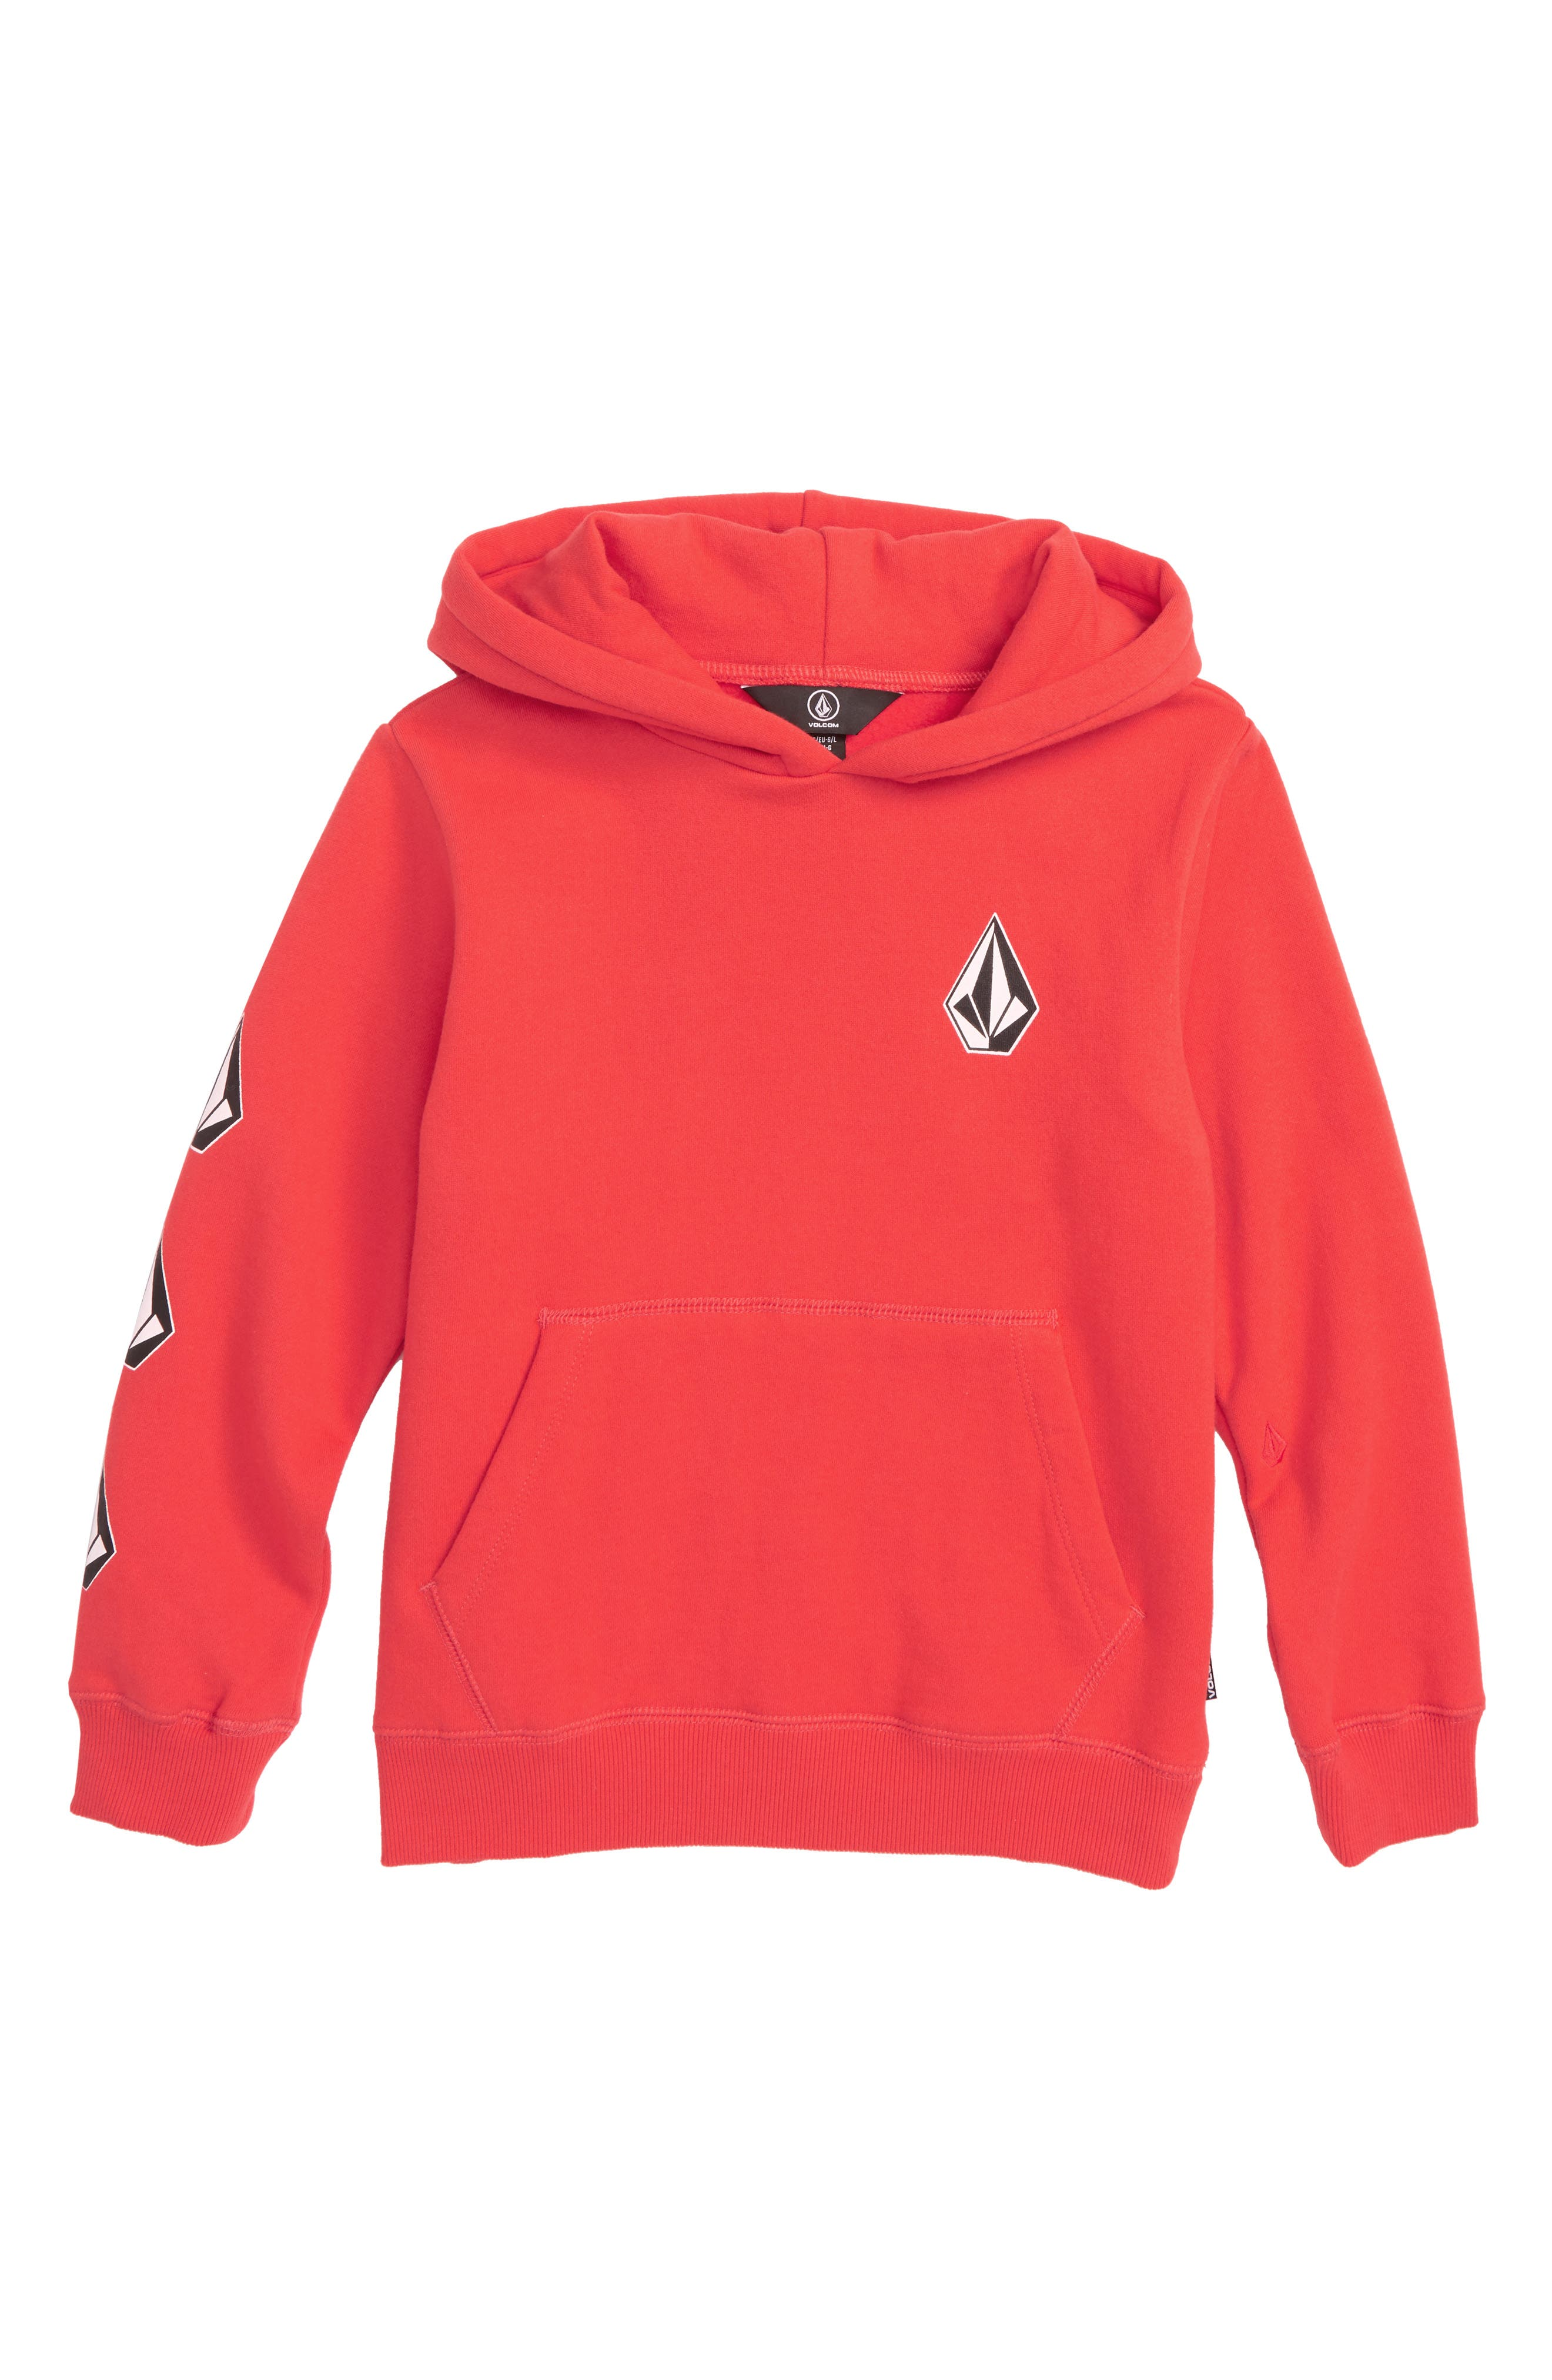 Deadly Stones Hoodie,                         Main,                         color, 621